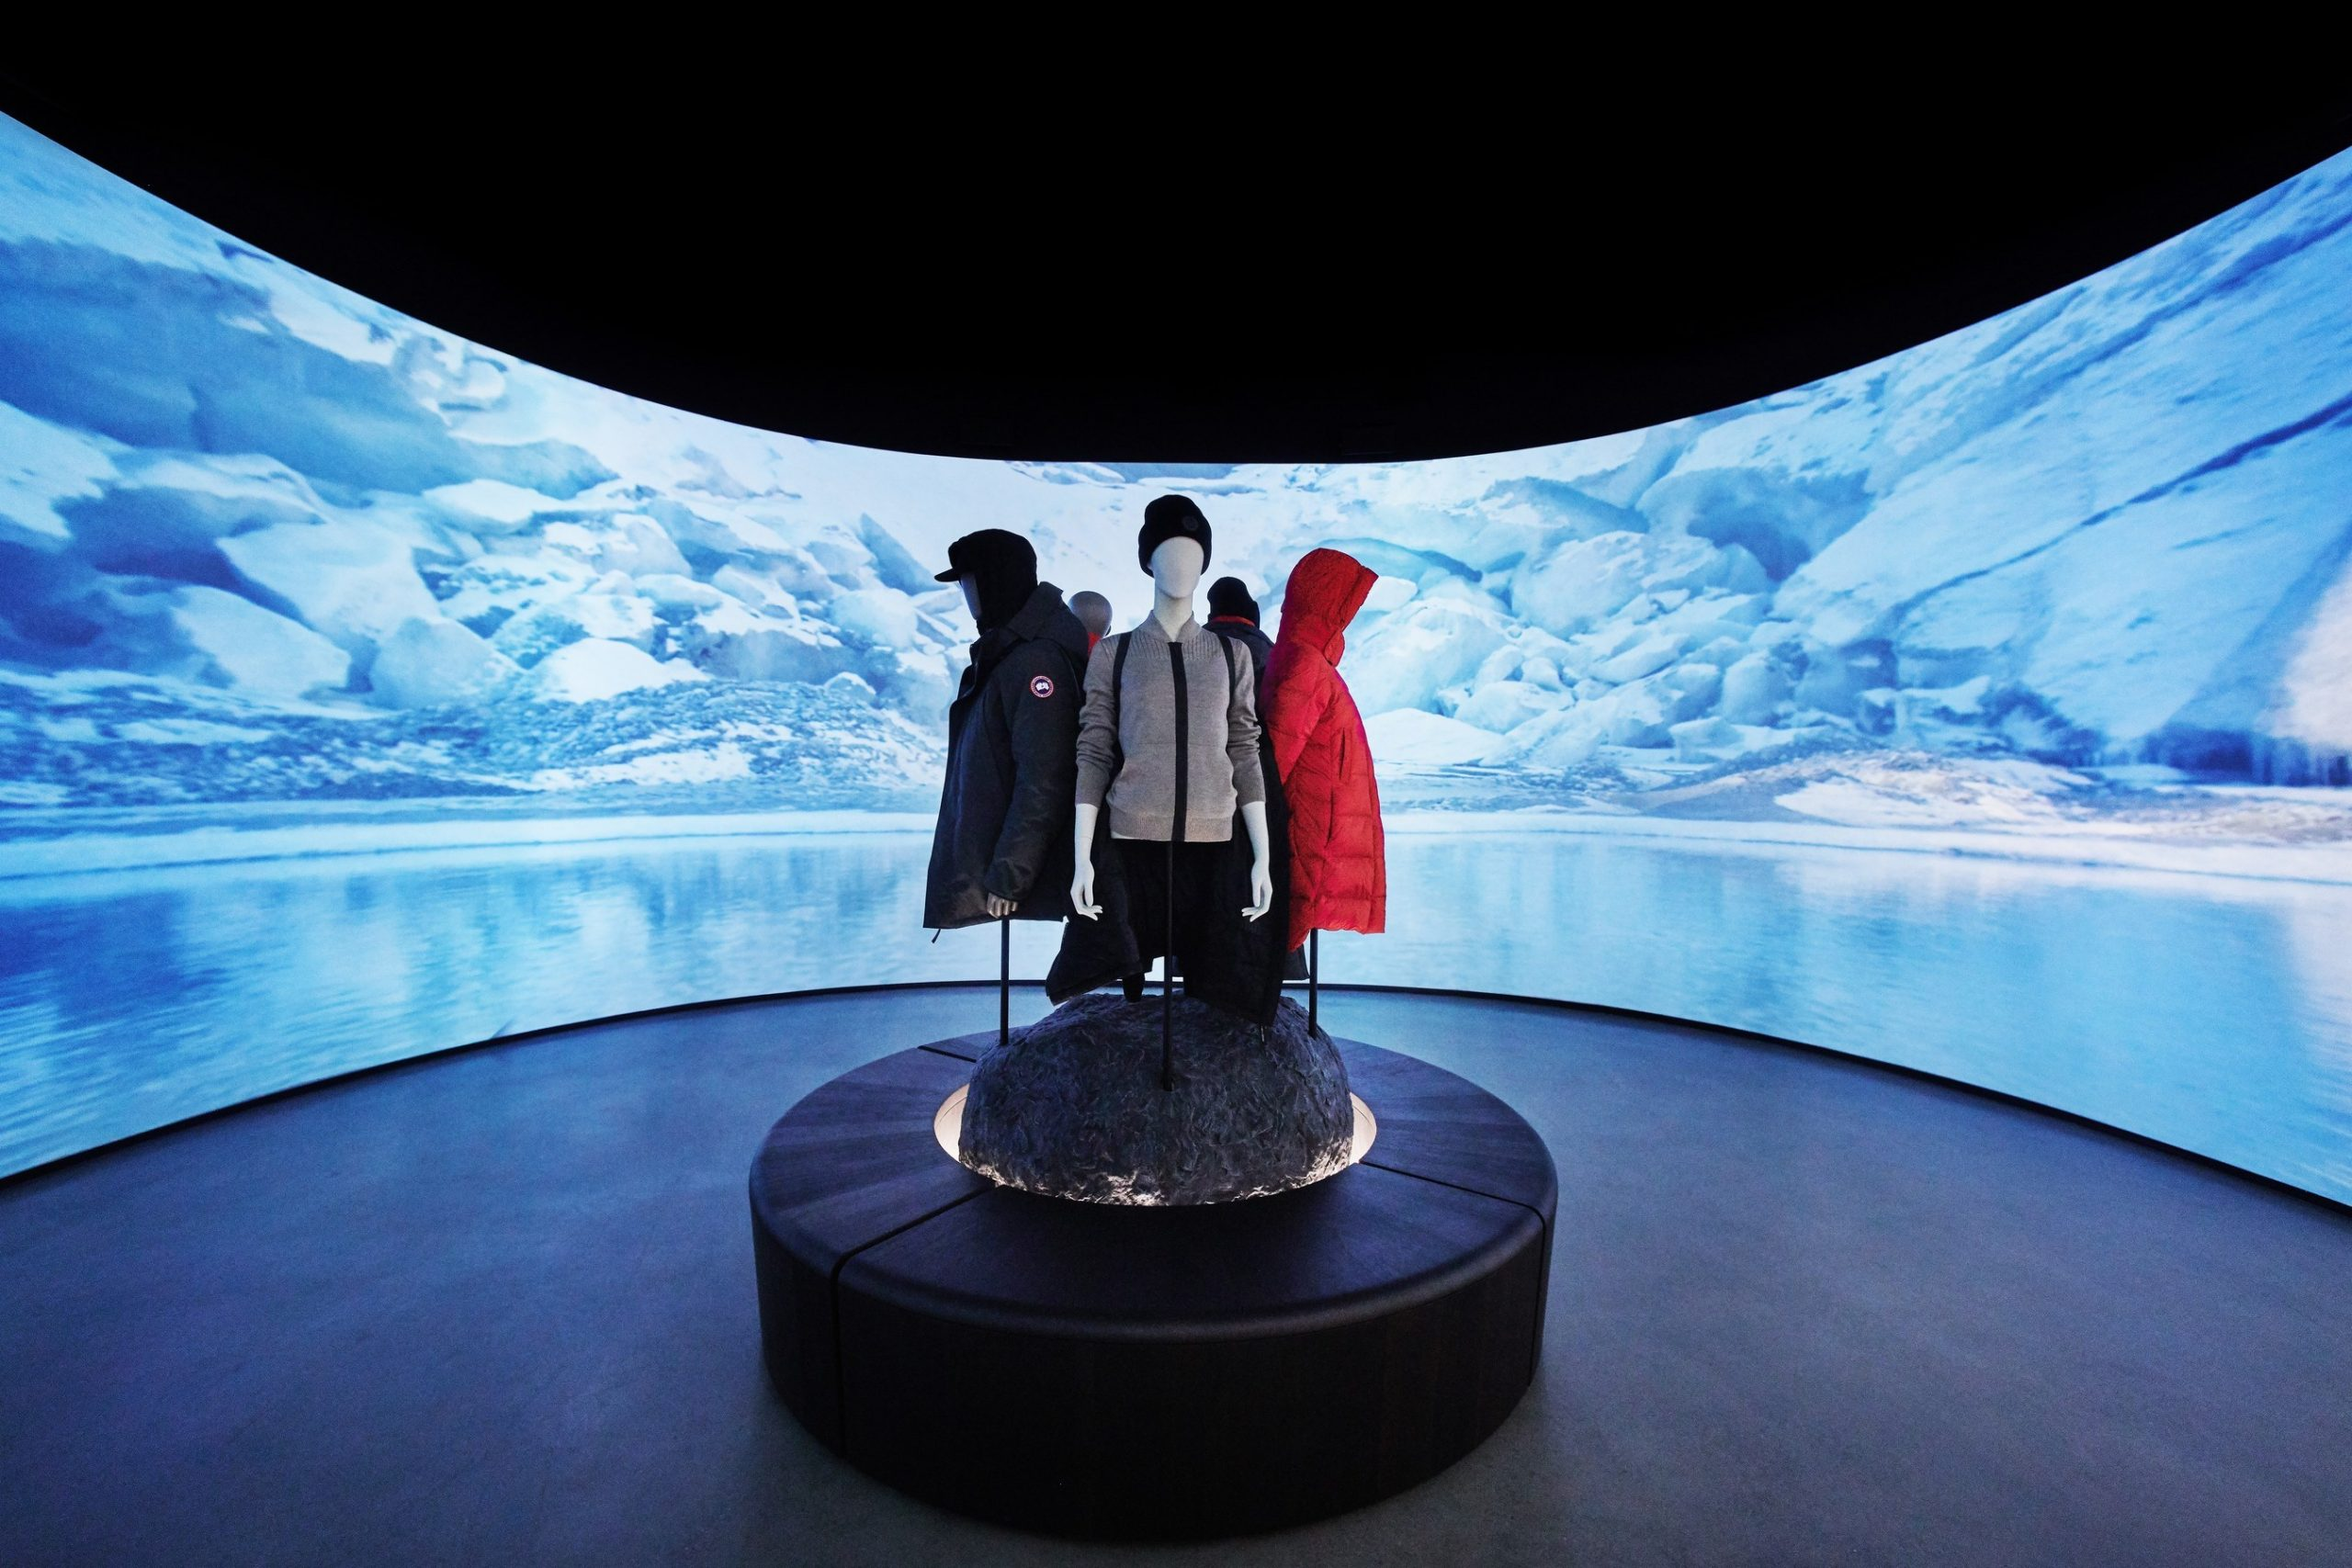 Canada Goose Unveils the Sights of Nature, Sounds of the Arctic and Touch of Real Snow with New Concept Store | PR Newswire